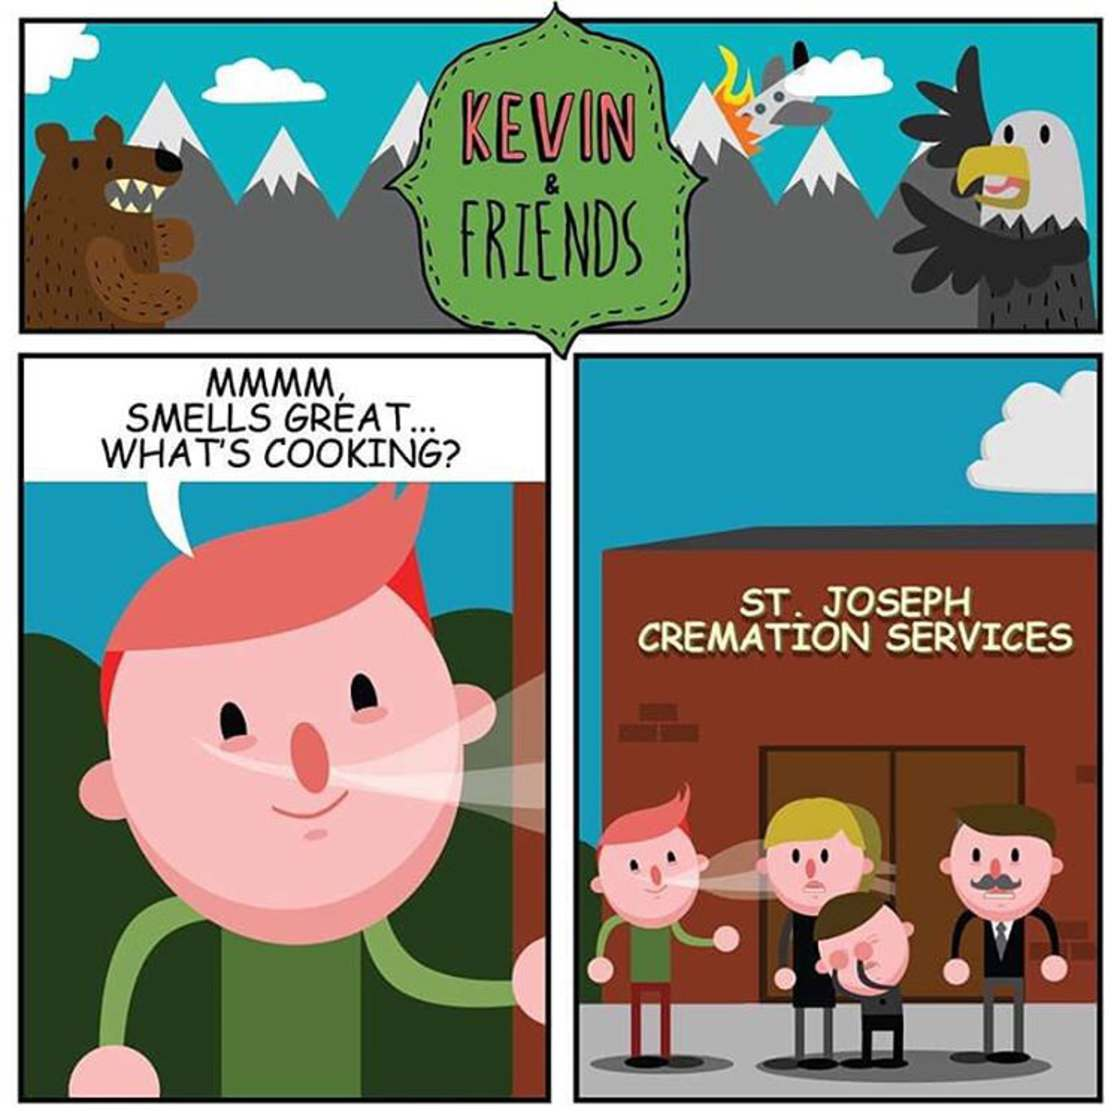 Kevin is optimistic - Hilarious illustrations filled with black humor